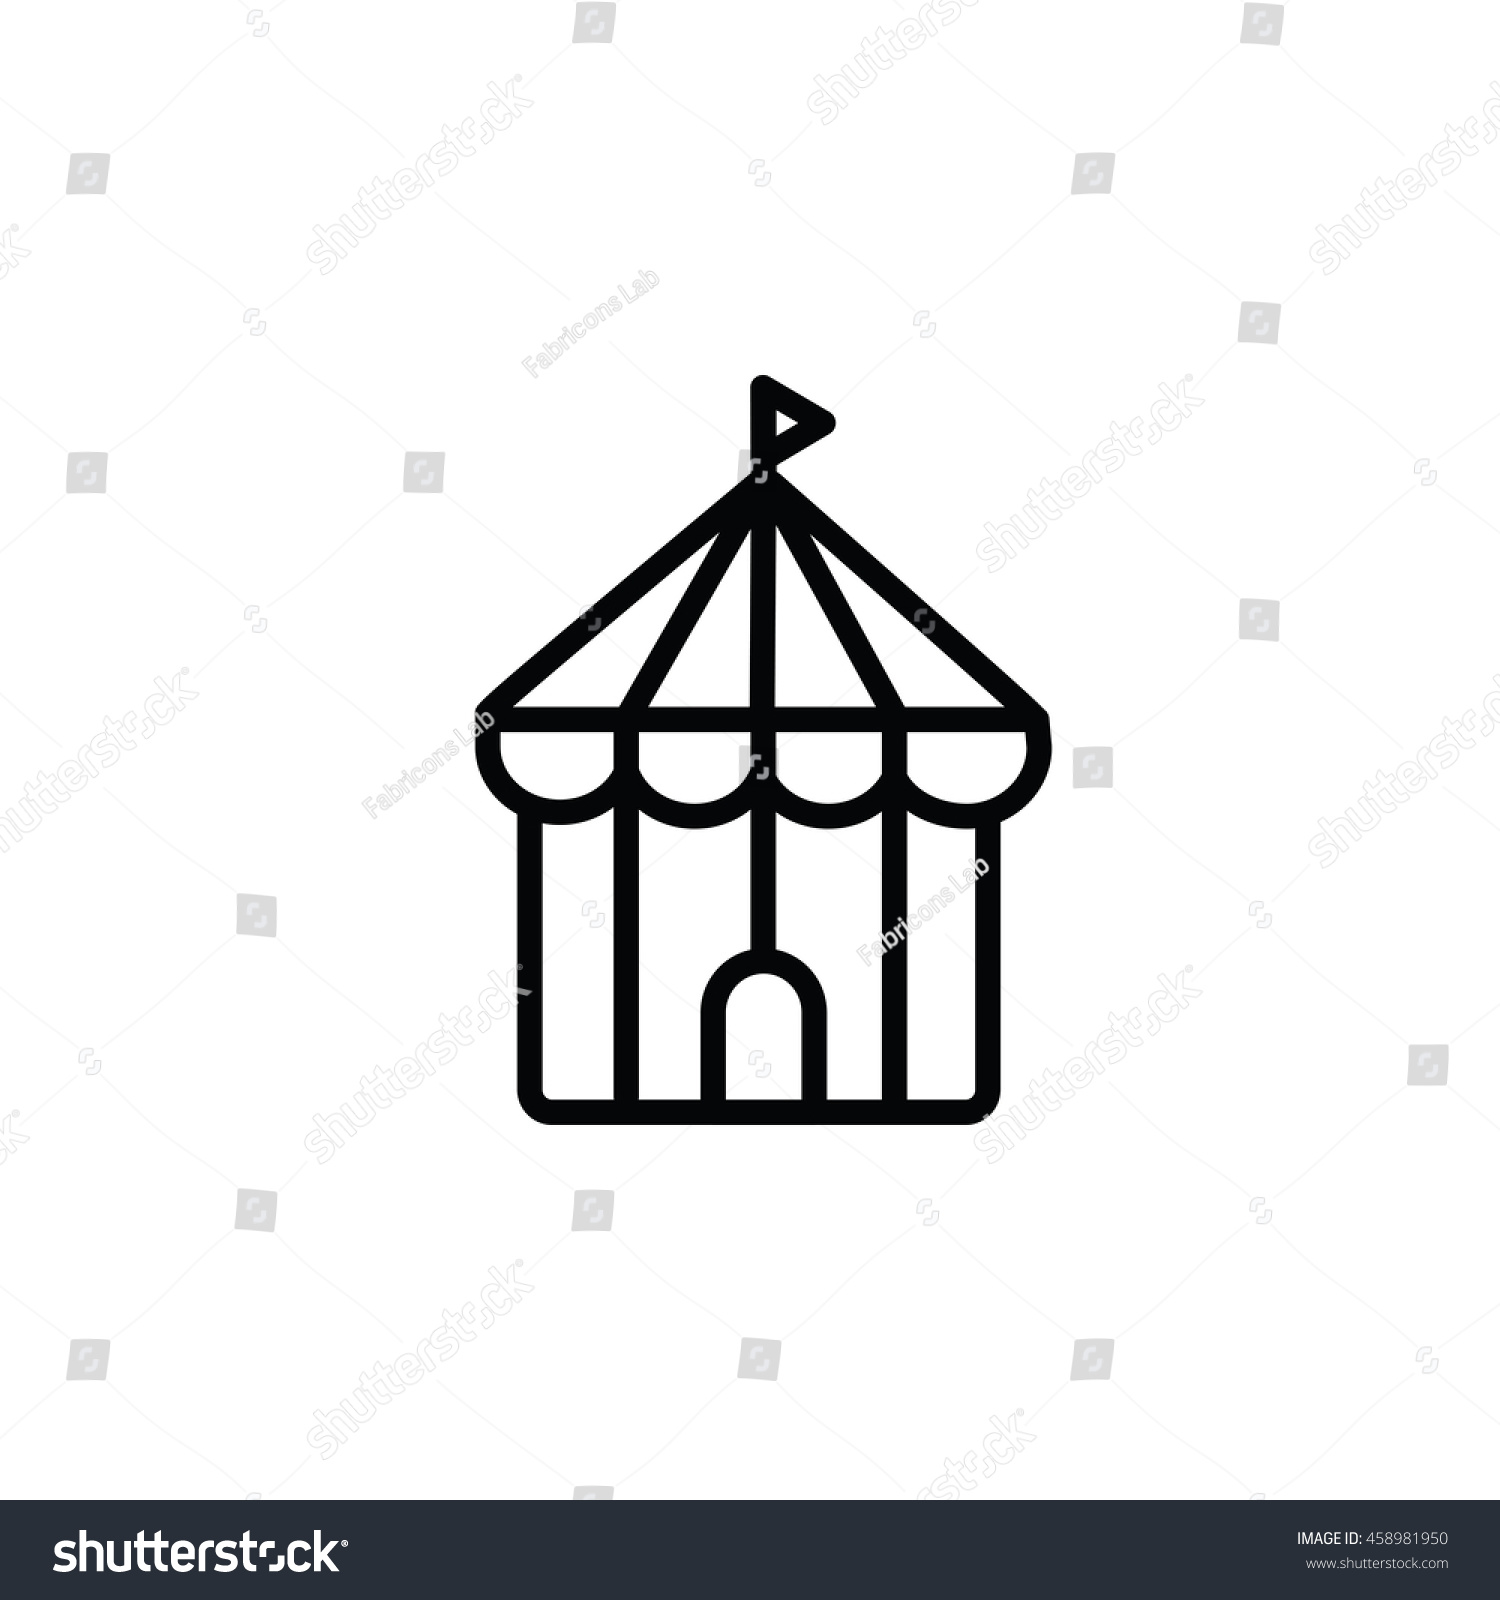 Circus Tent Outline Icon  sc 1 st  Shutterstock & Circus Tent Outline Icon Stock Vector 458981950 - Shutterstock